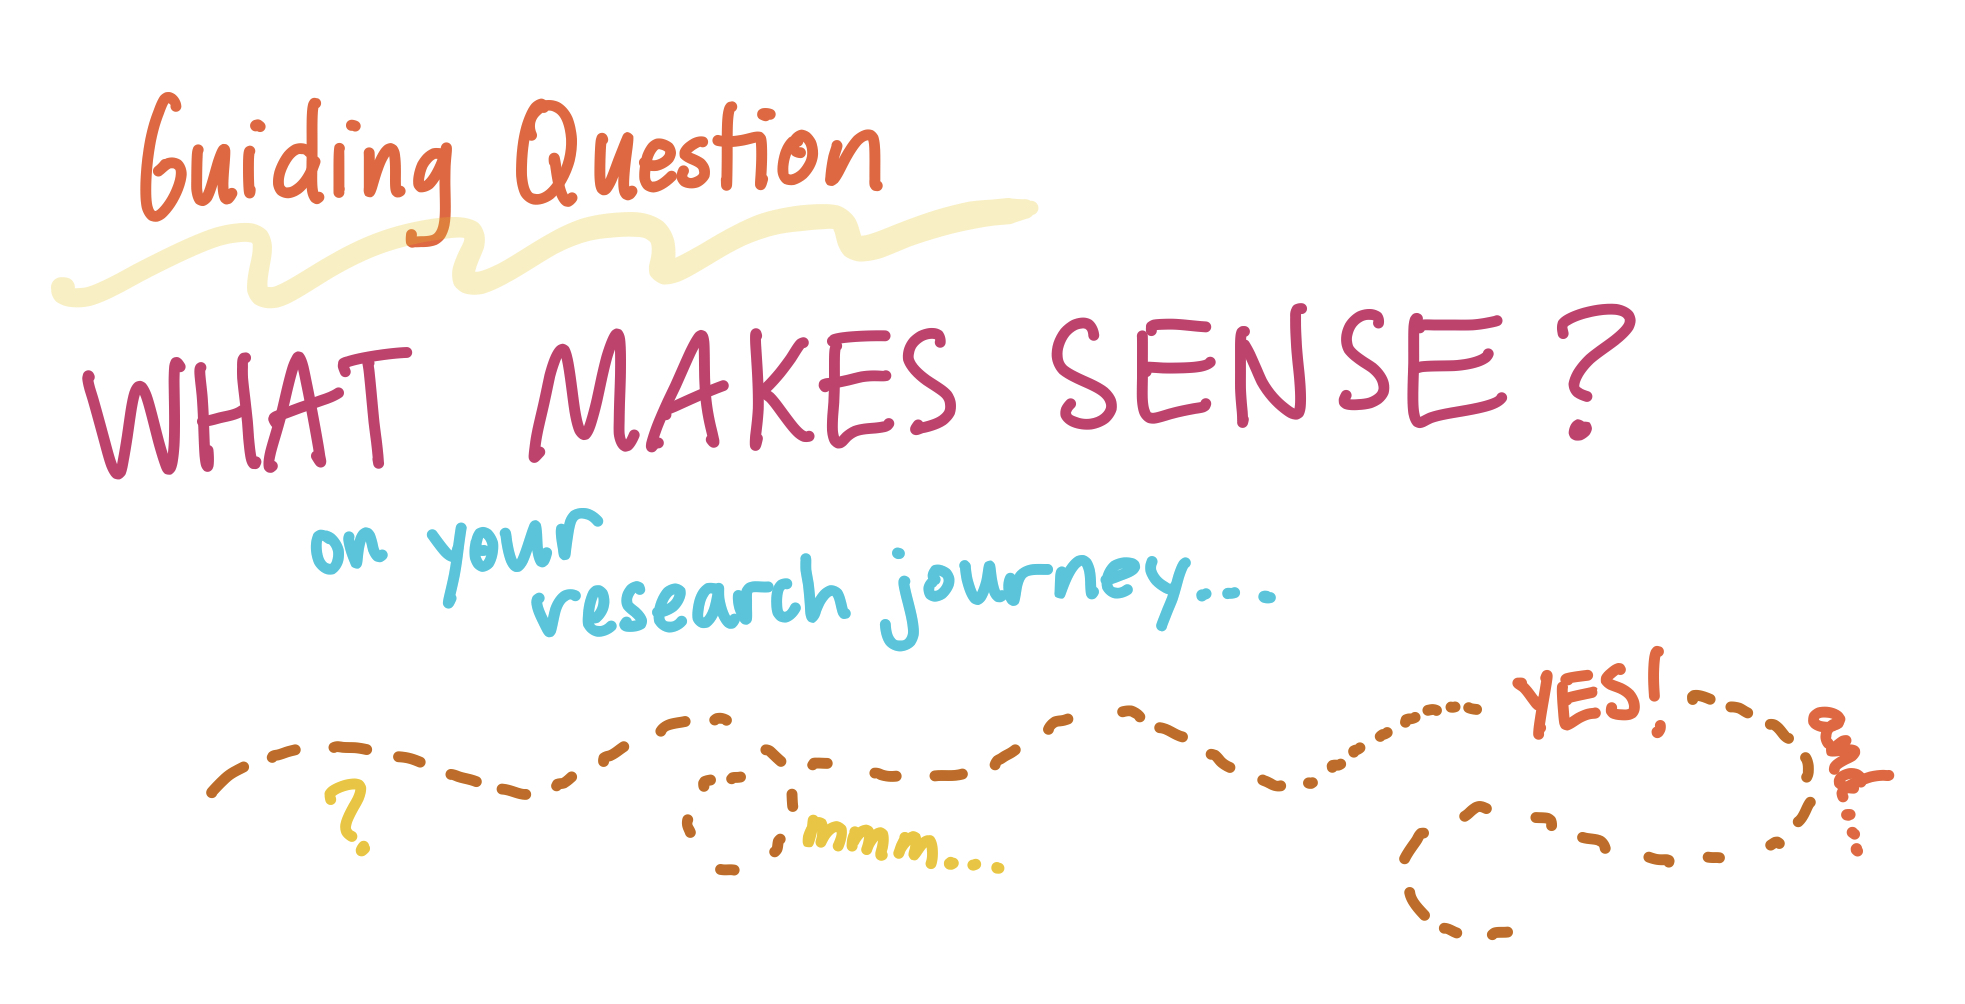 Guiding Question: What makes sense? On your research journey